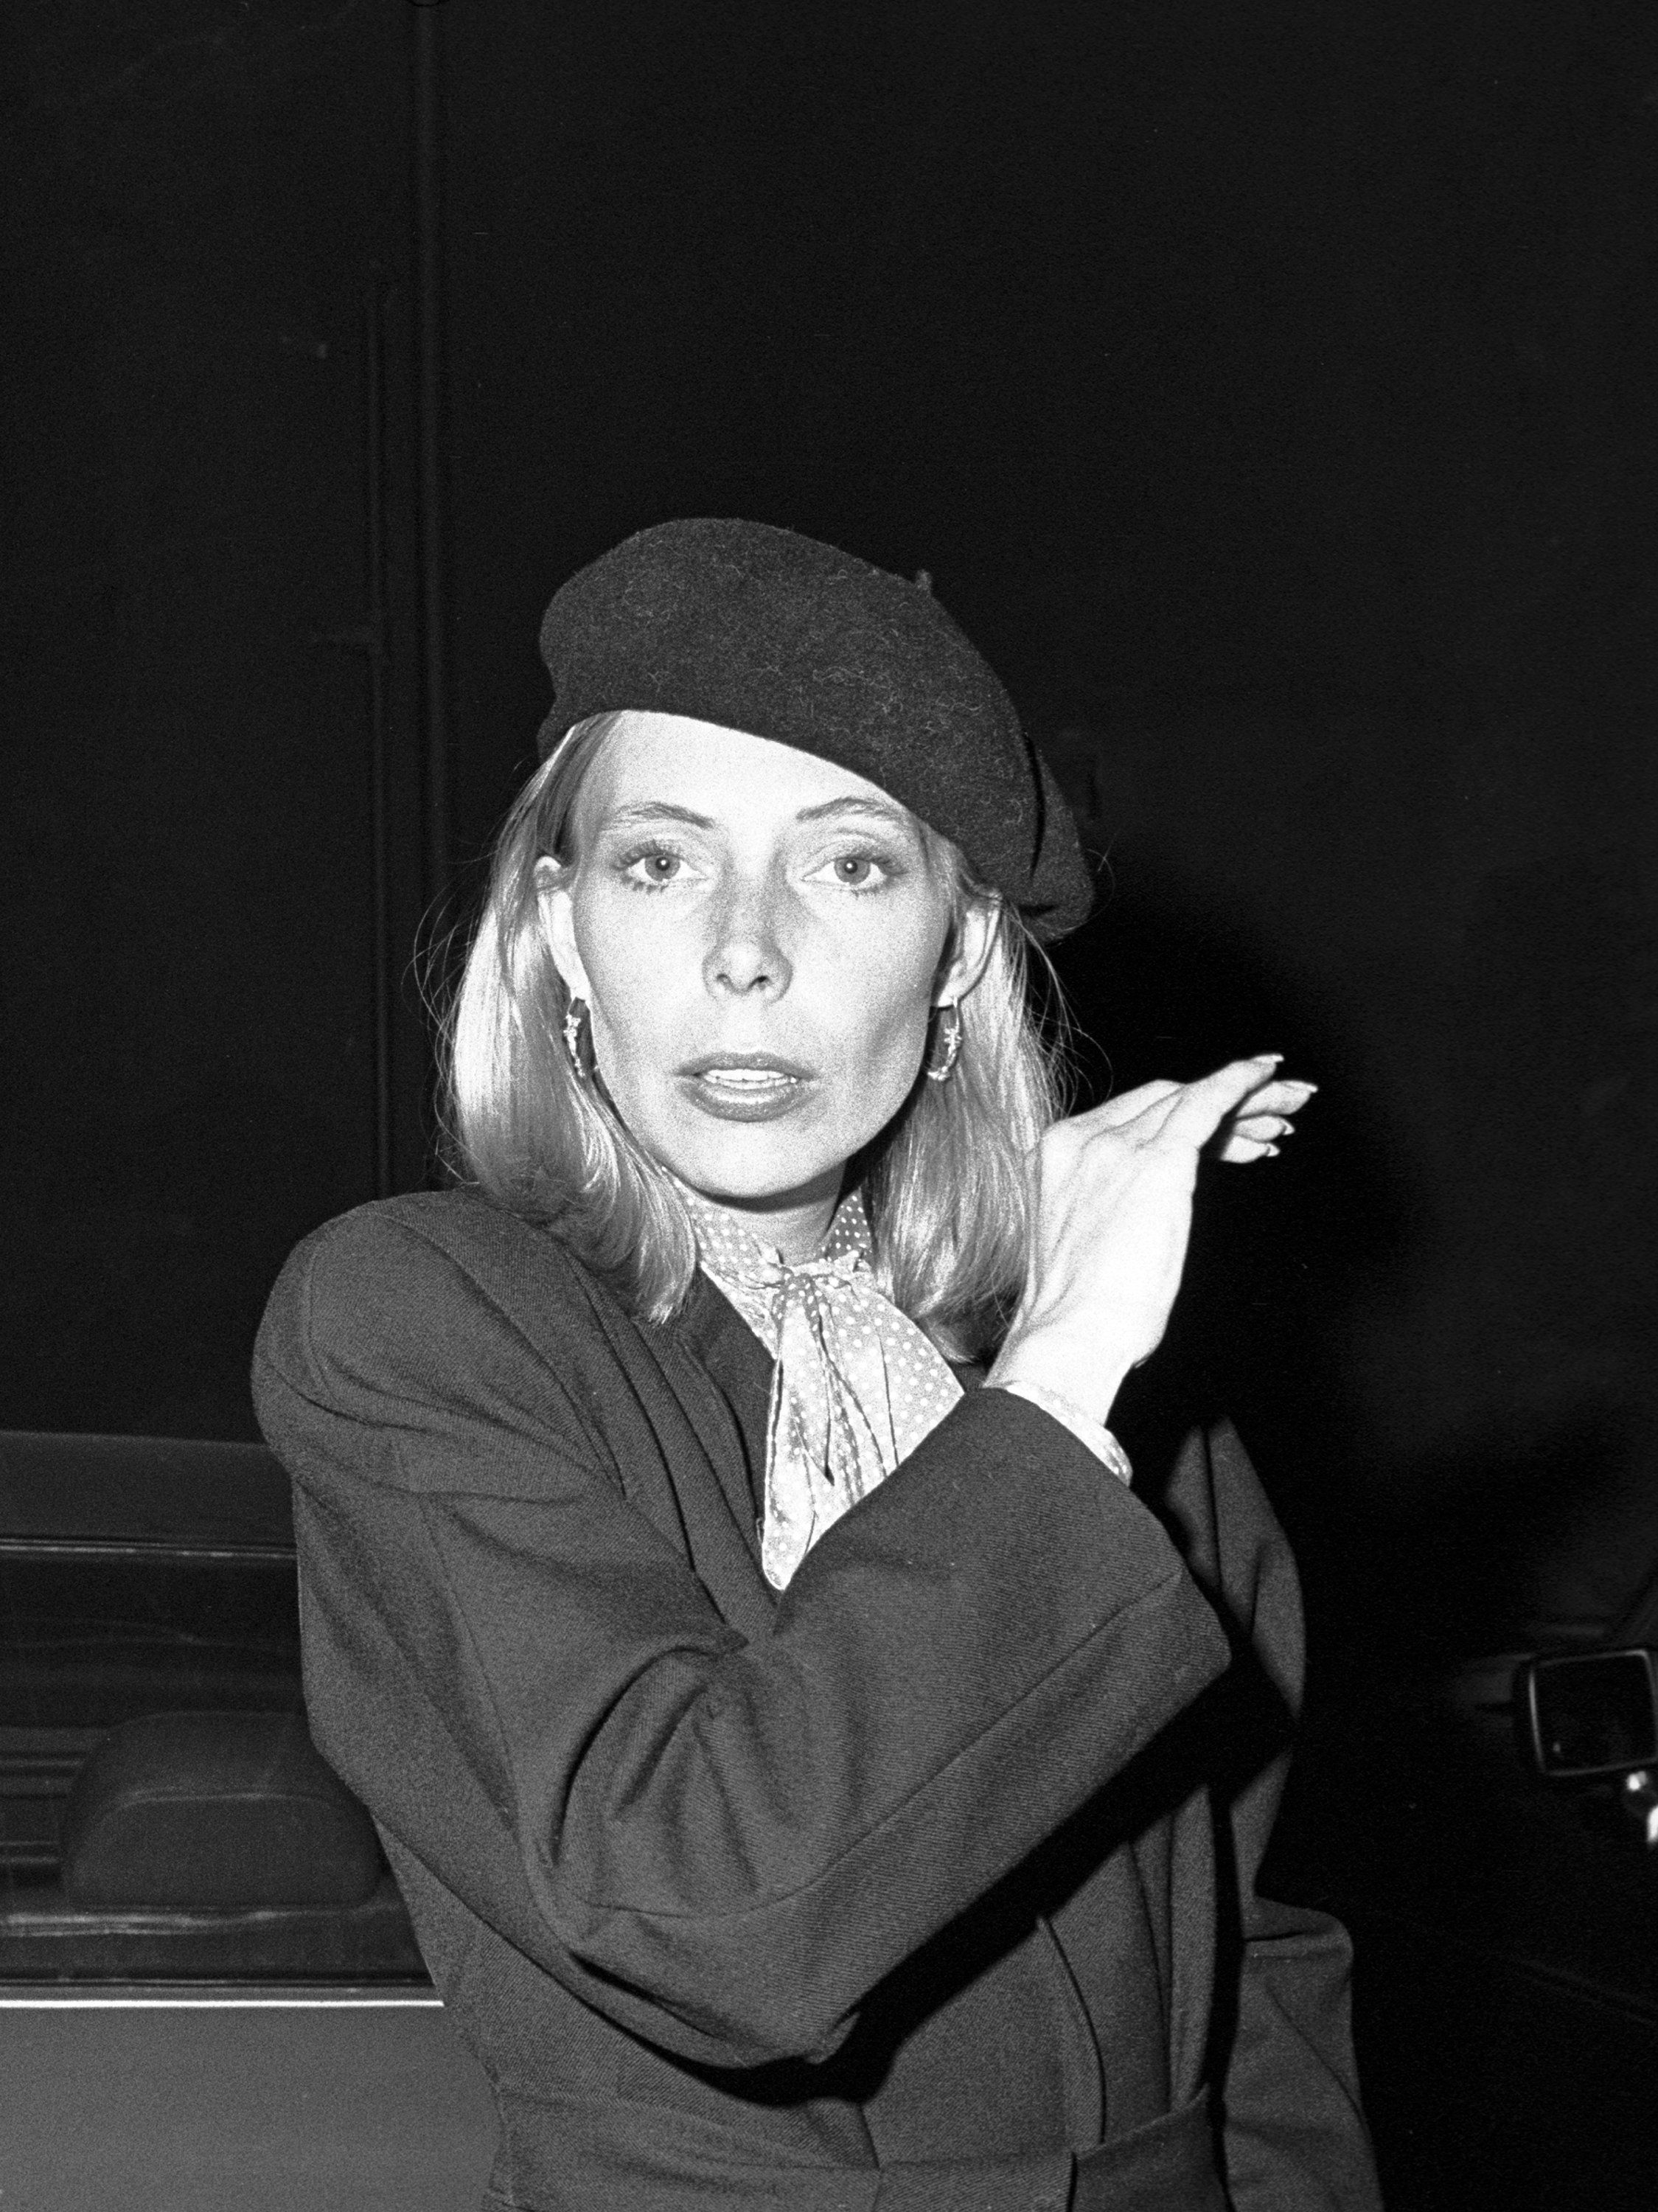 UNSPECIFIED - OCTOBER 17:  Photo of Joni Mitchell.  (Photo by Michael Ochs Archives/Getty Images)